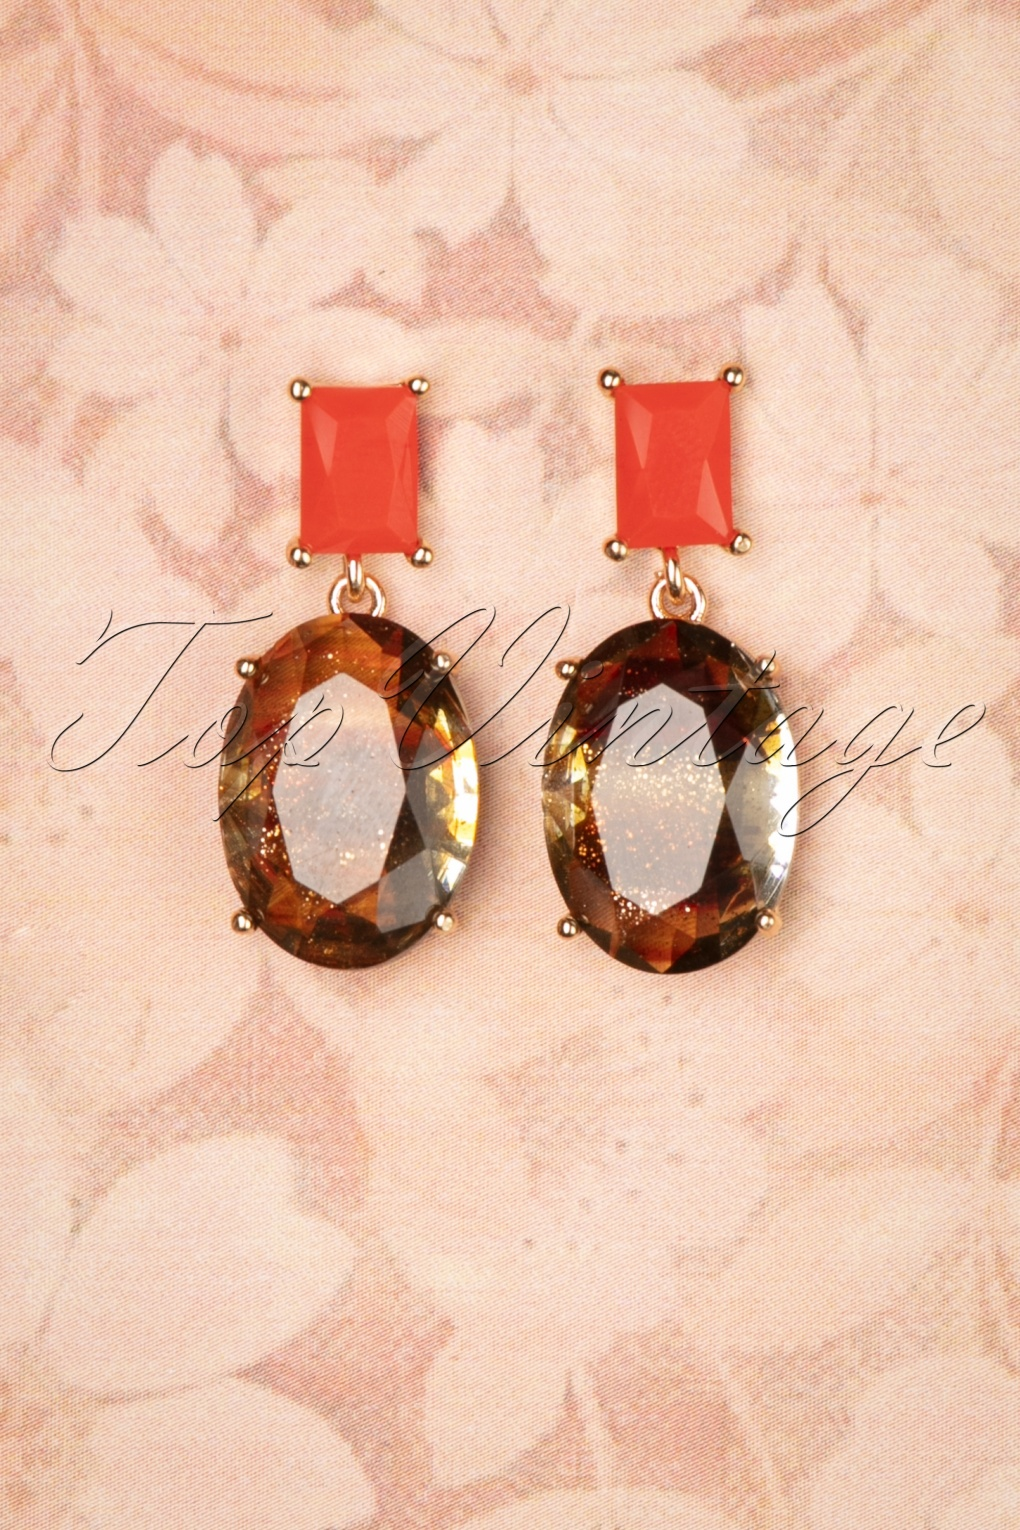 50s Jewelry: Earrings, Necklace, Brooch, Bracelet 50s Stone Drop Earrings in Coral £8.61 AT vintagedancer.com